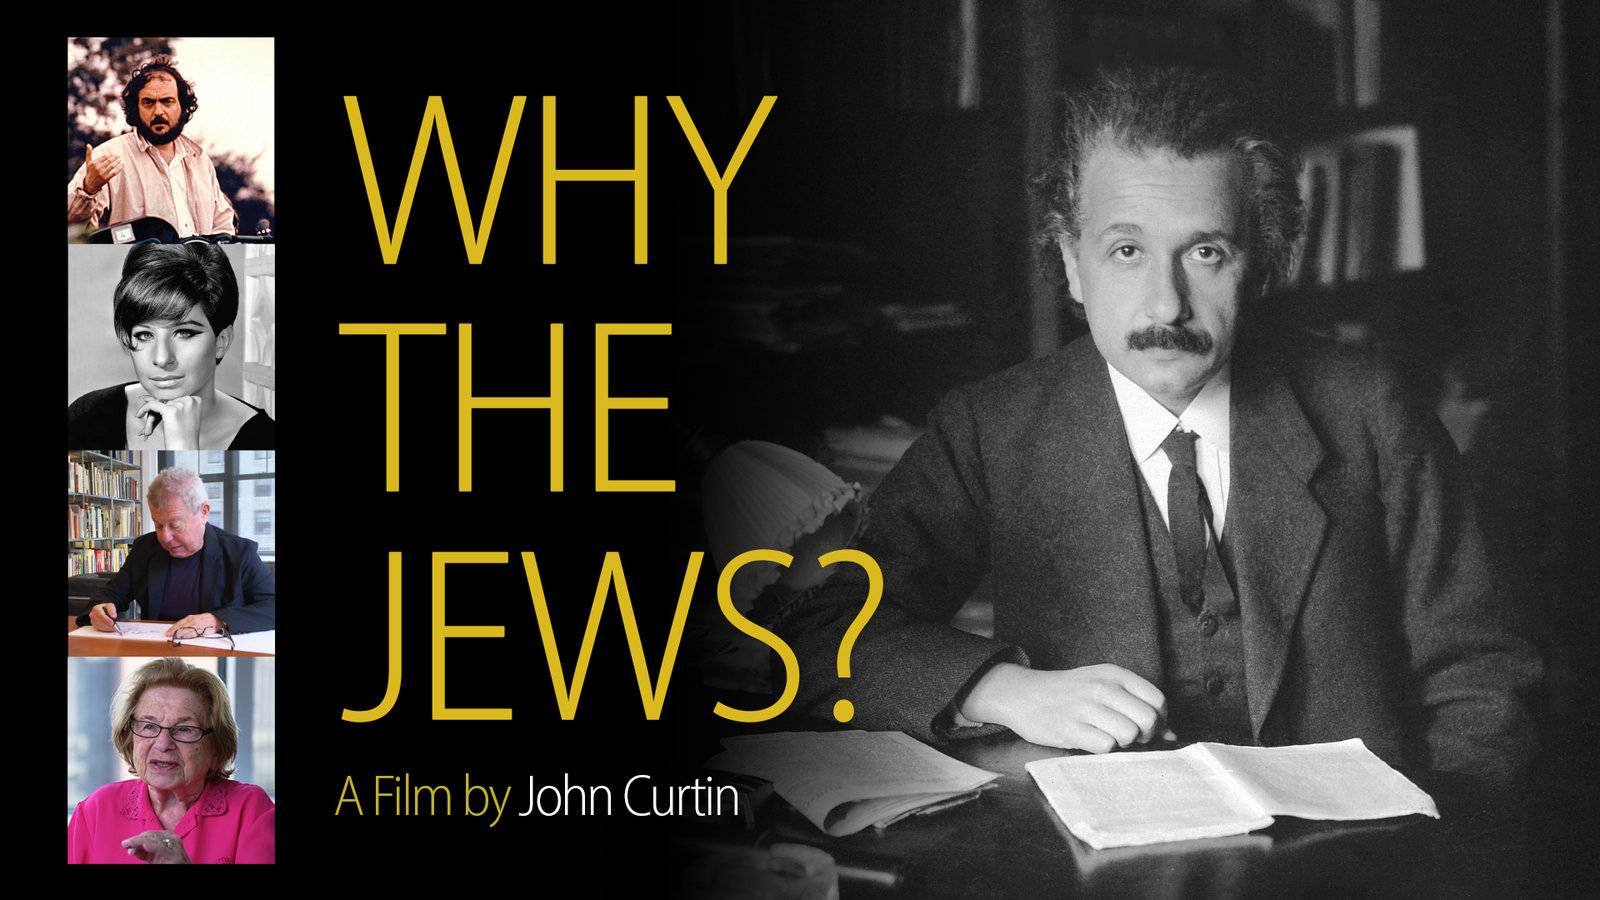 Why The Jews?